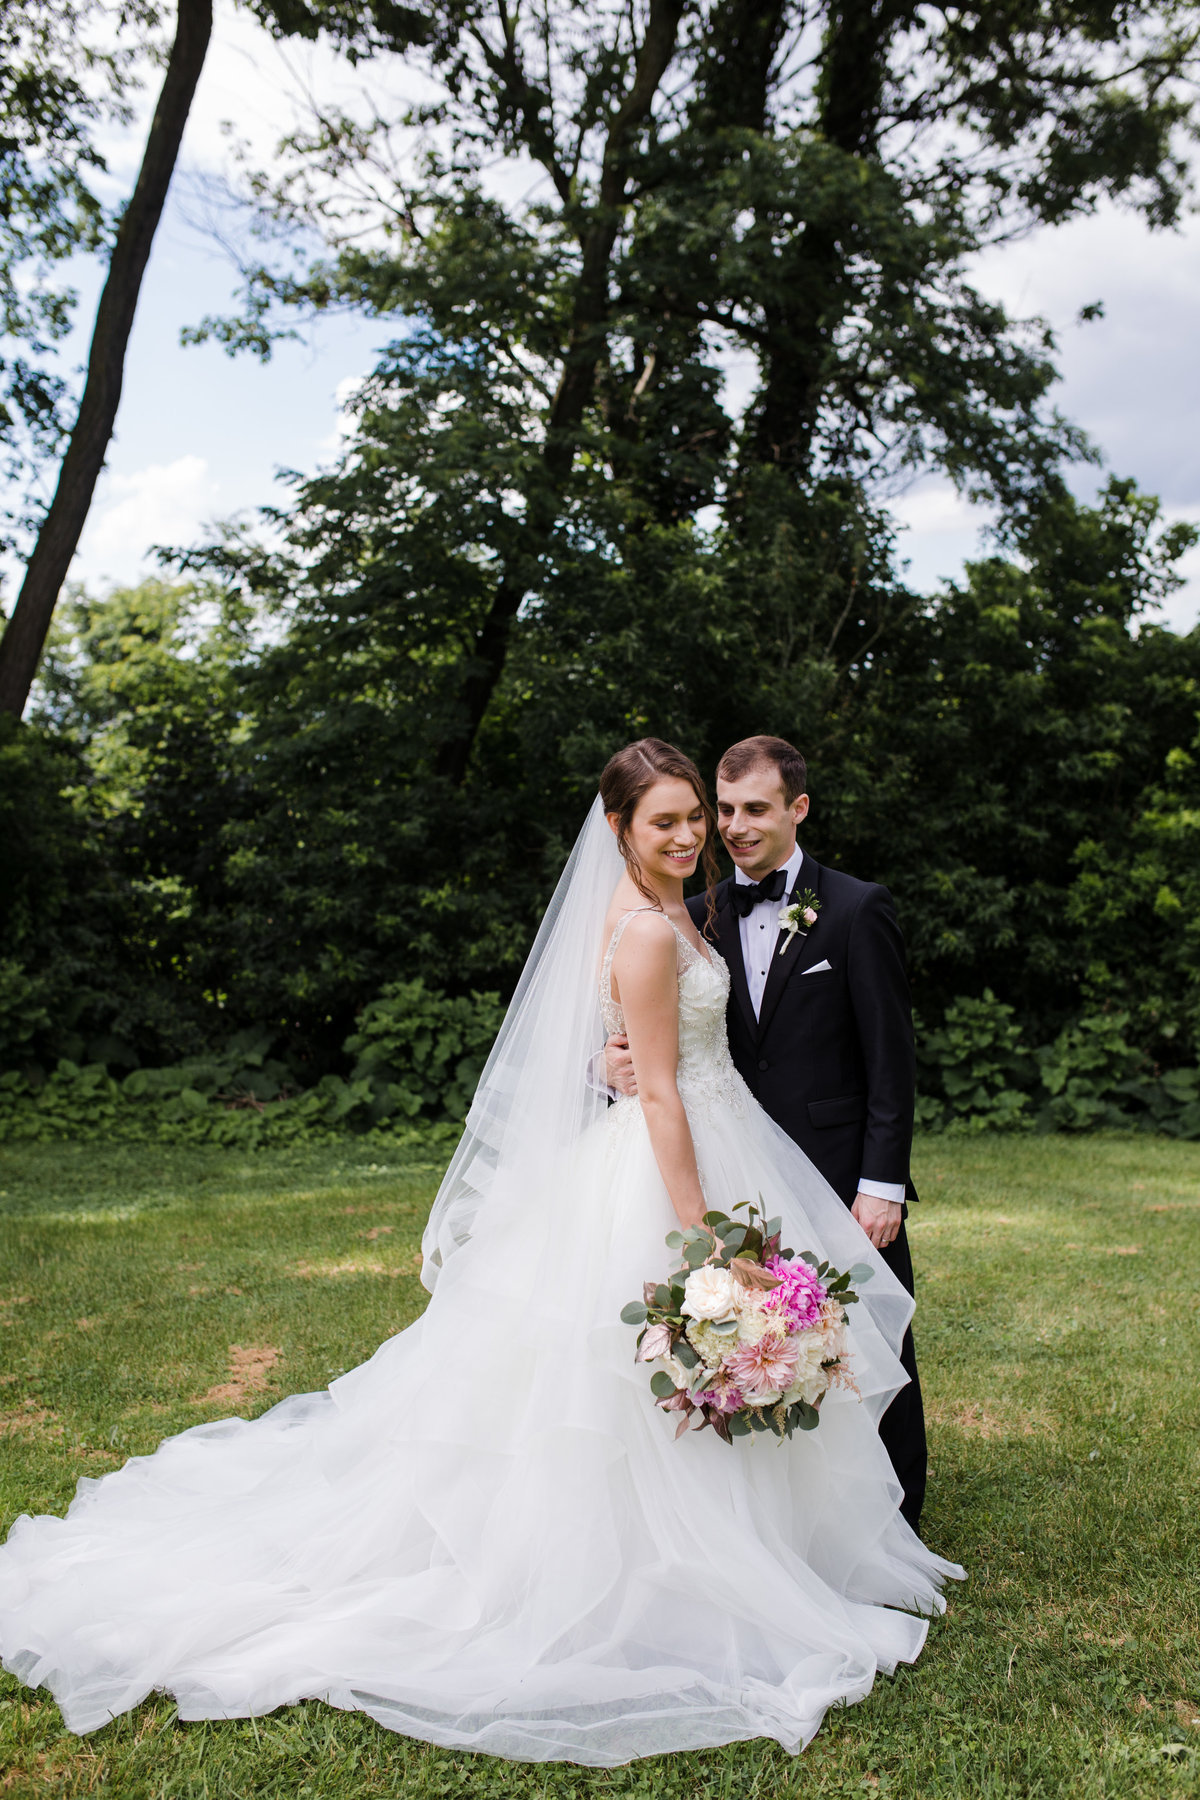 Unique pgh wedding photography60